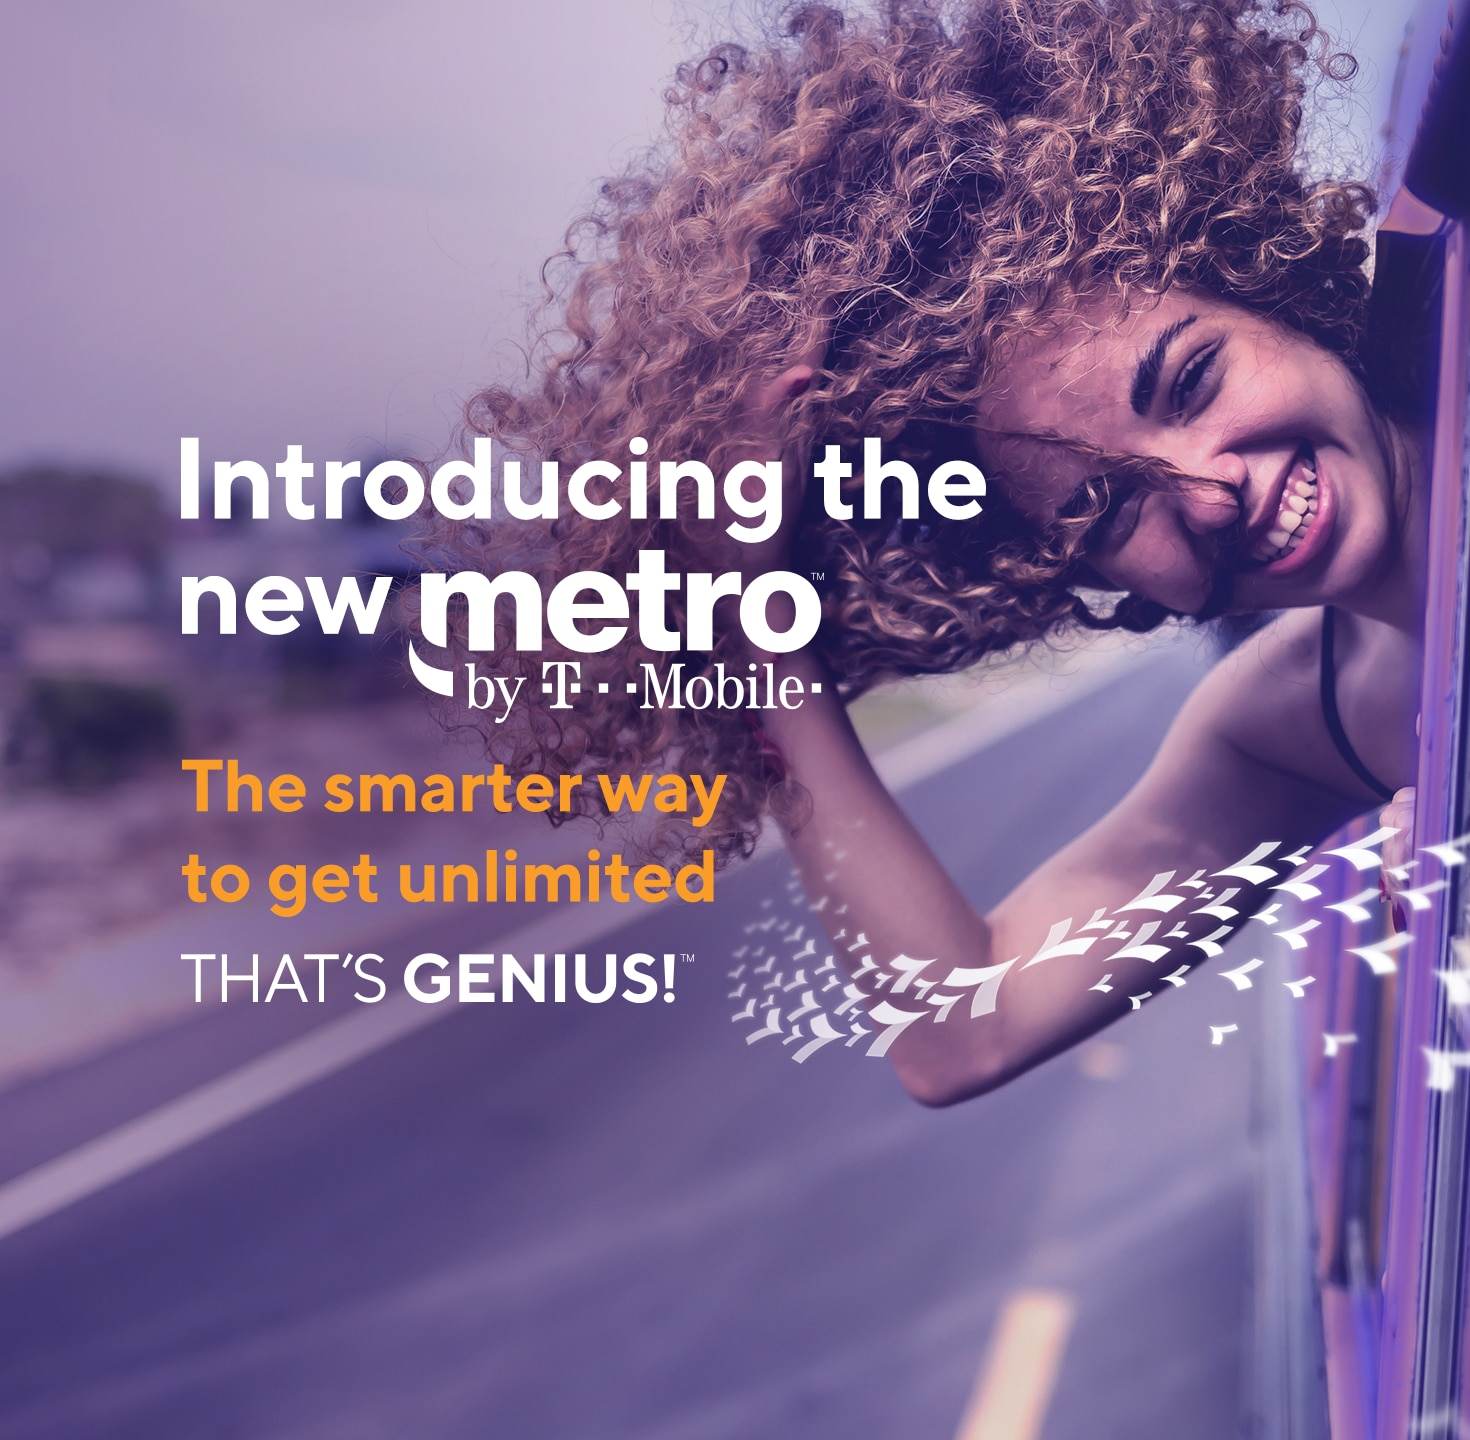 Introducing the new Metro by T-Mobile! The smarter way to get unlimited. That's genius!